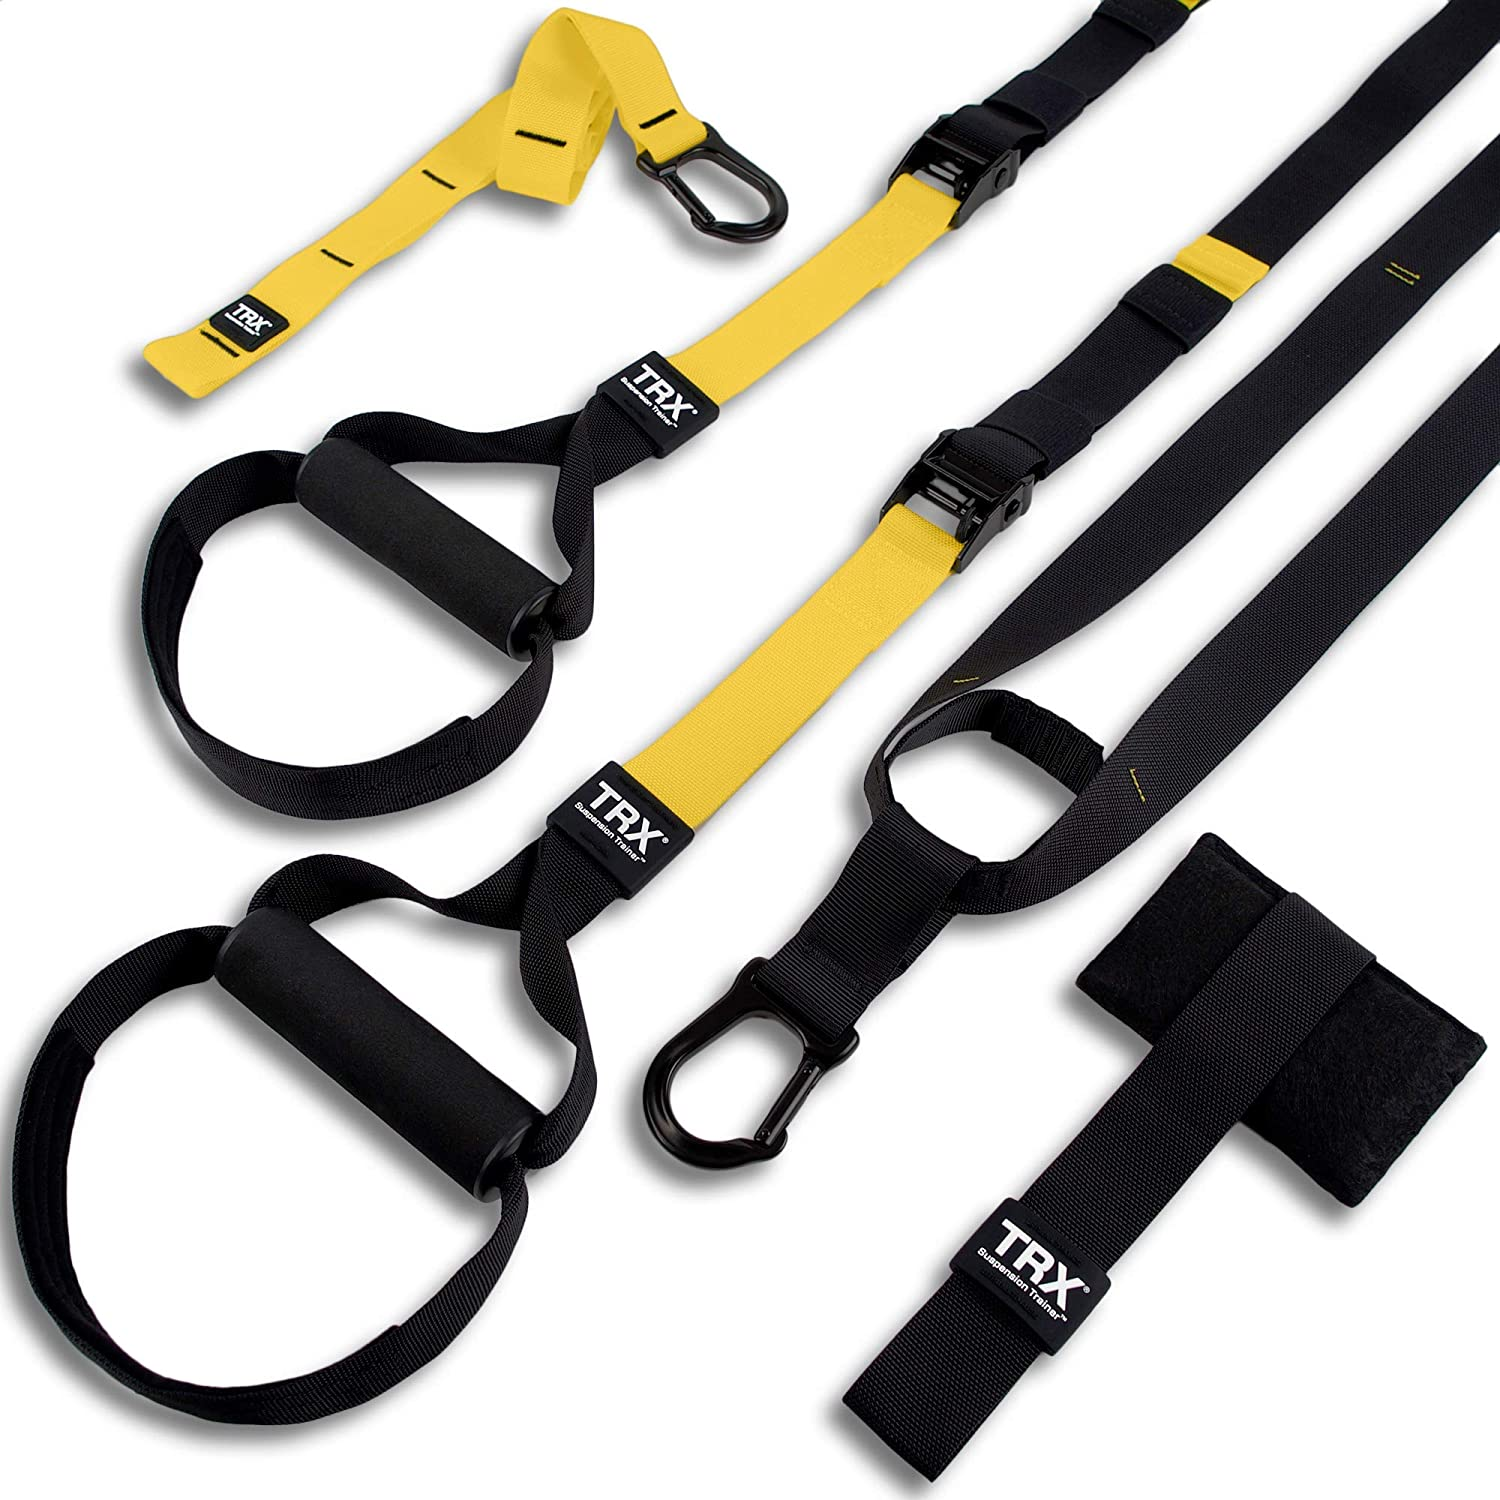 TRX All-in-One Body Chicago Mall Suspension Anchor Free shipping Door Trainer